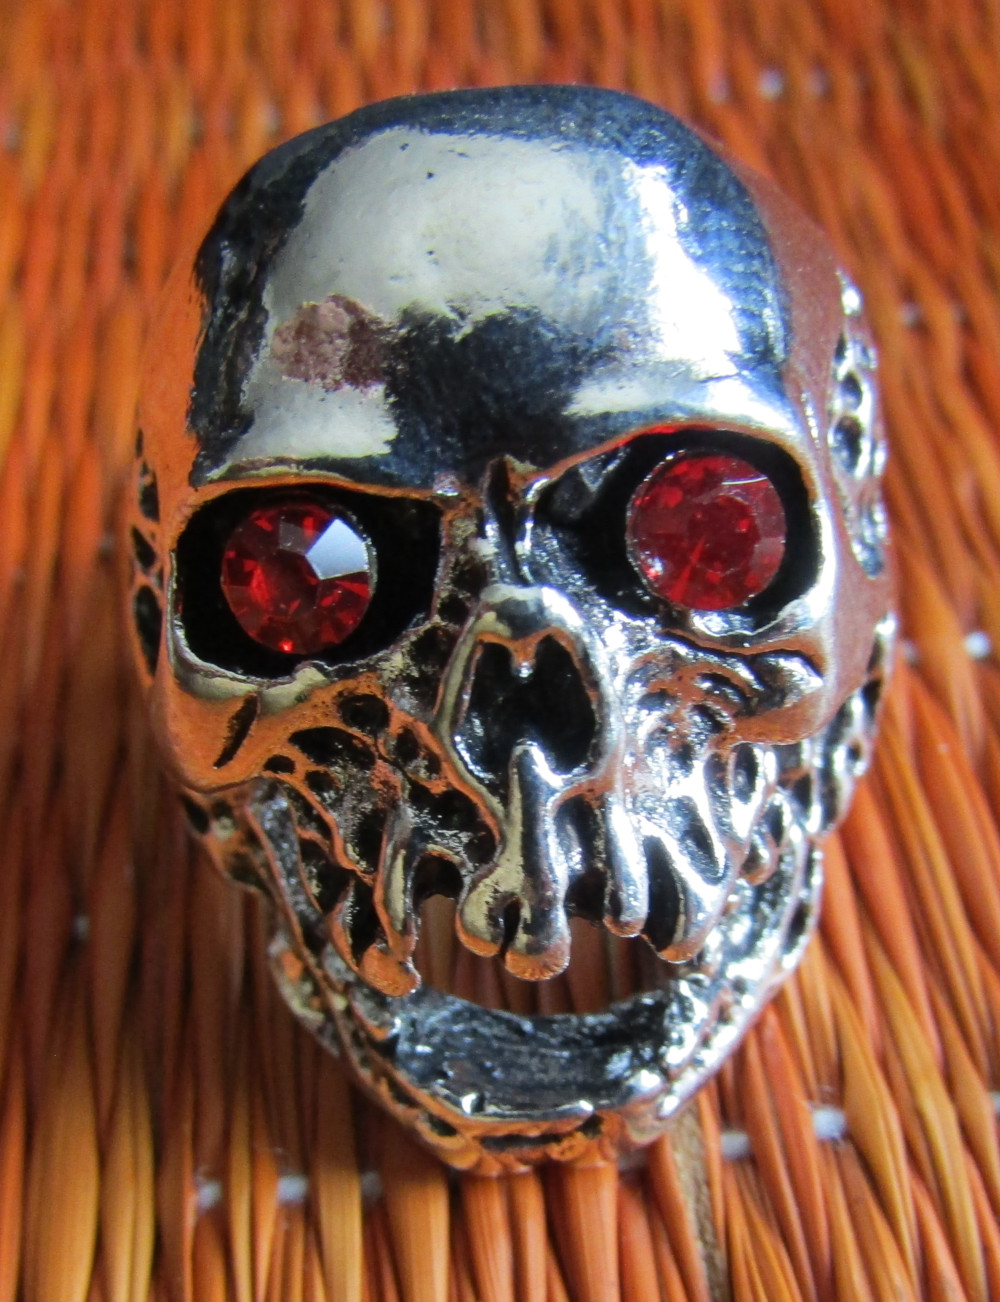 Rebel Ring Red Eyed Skull